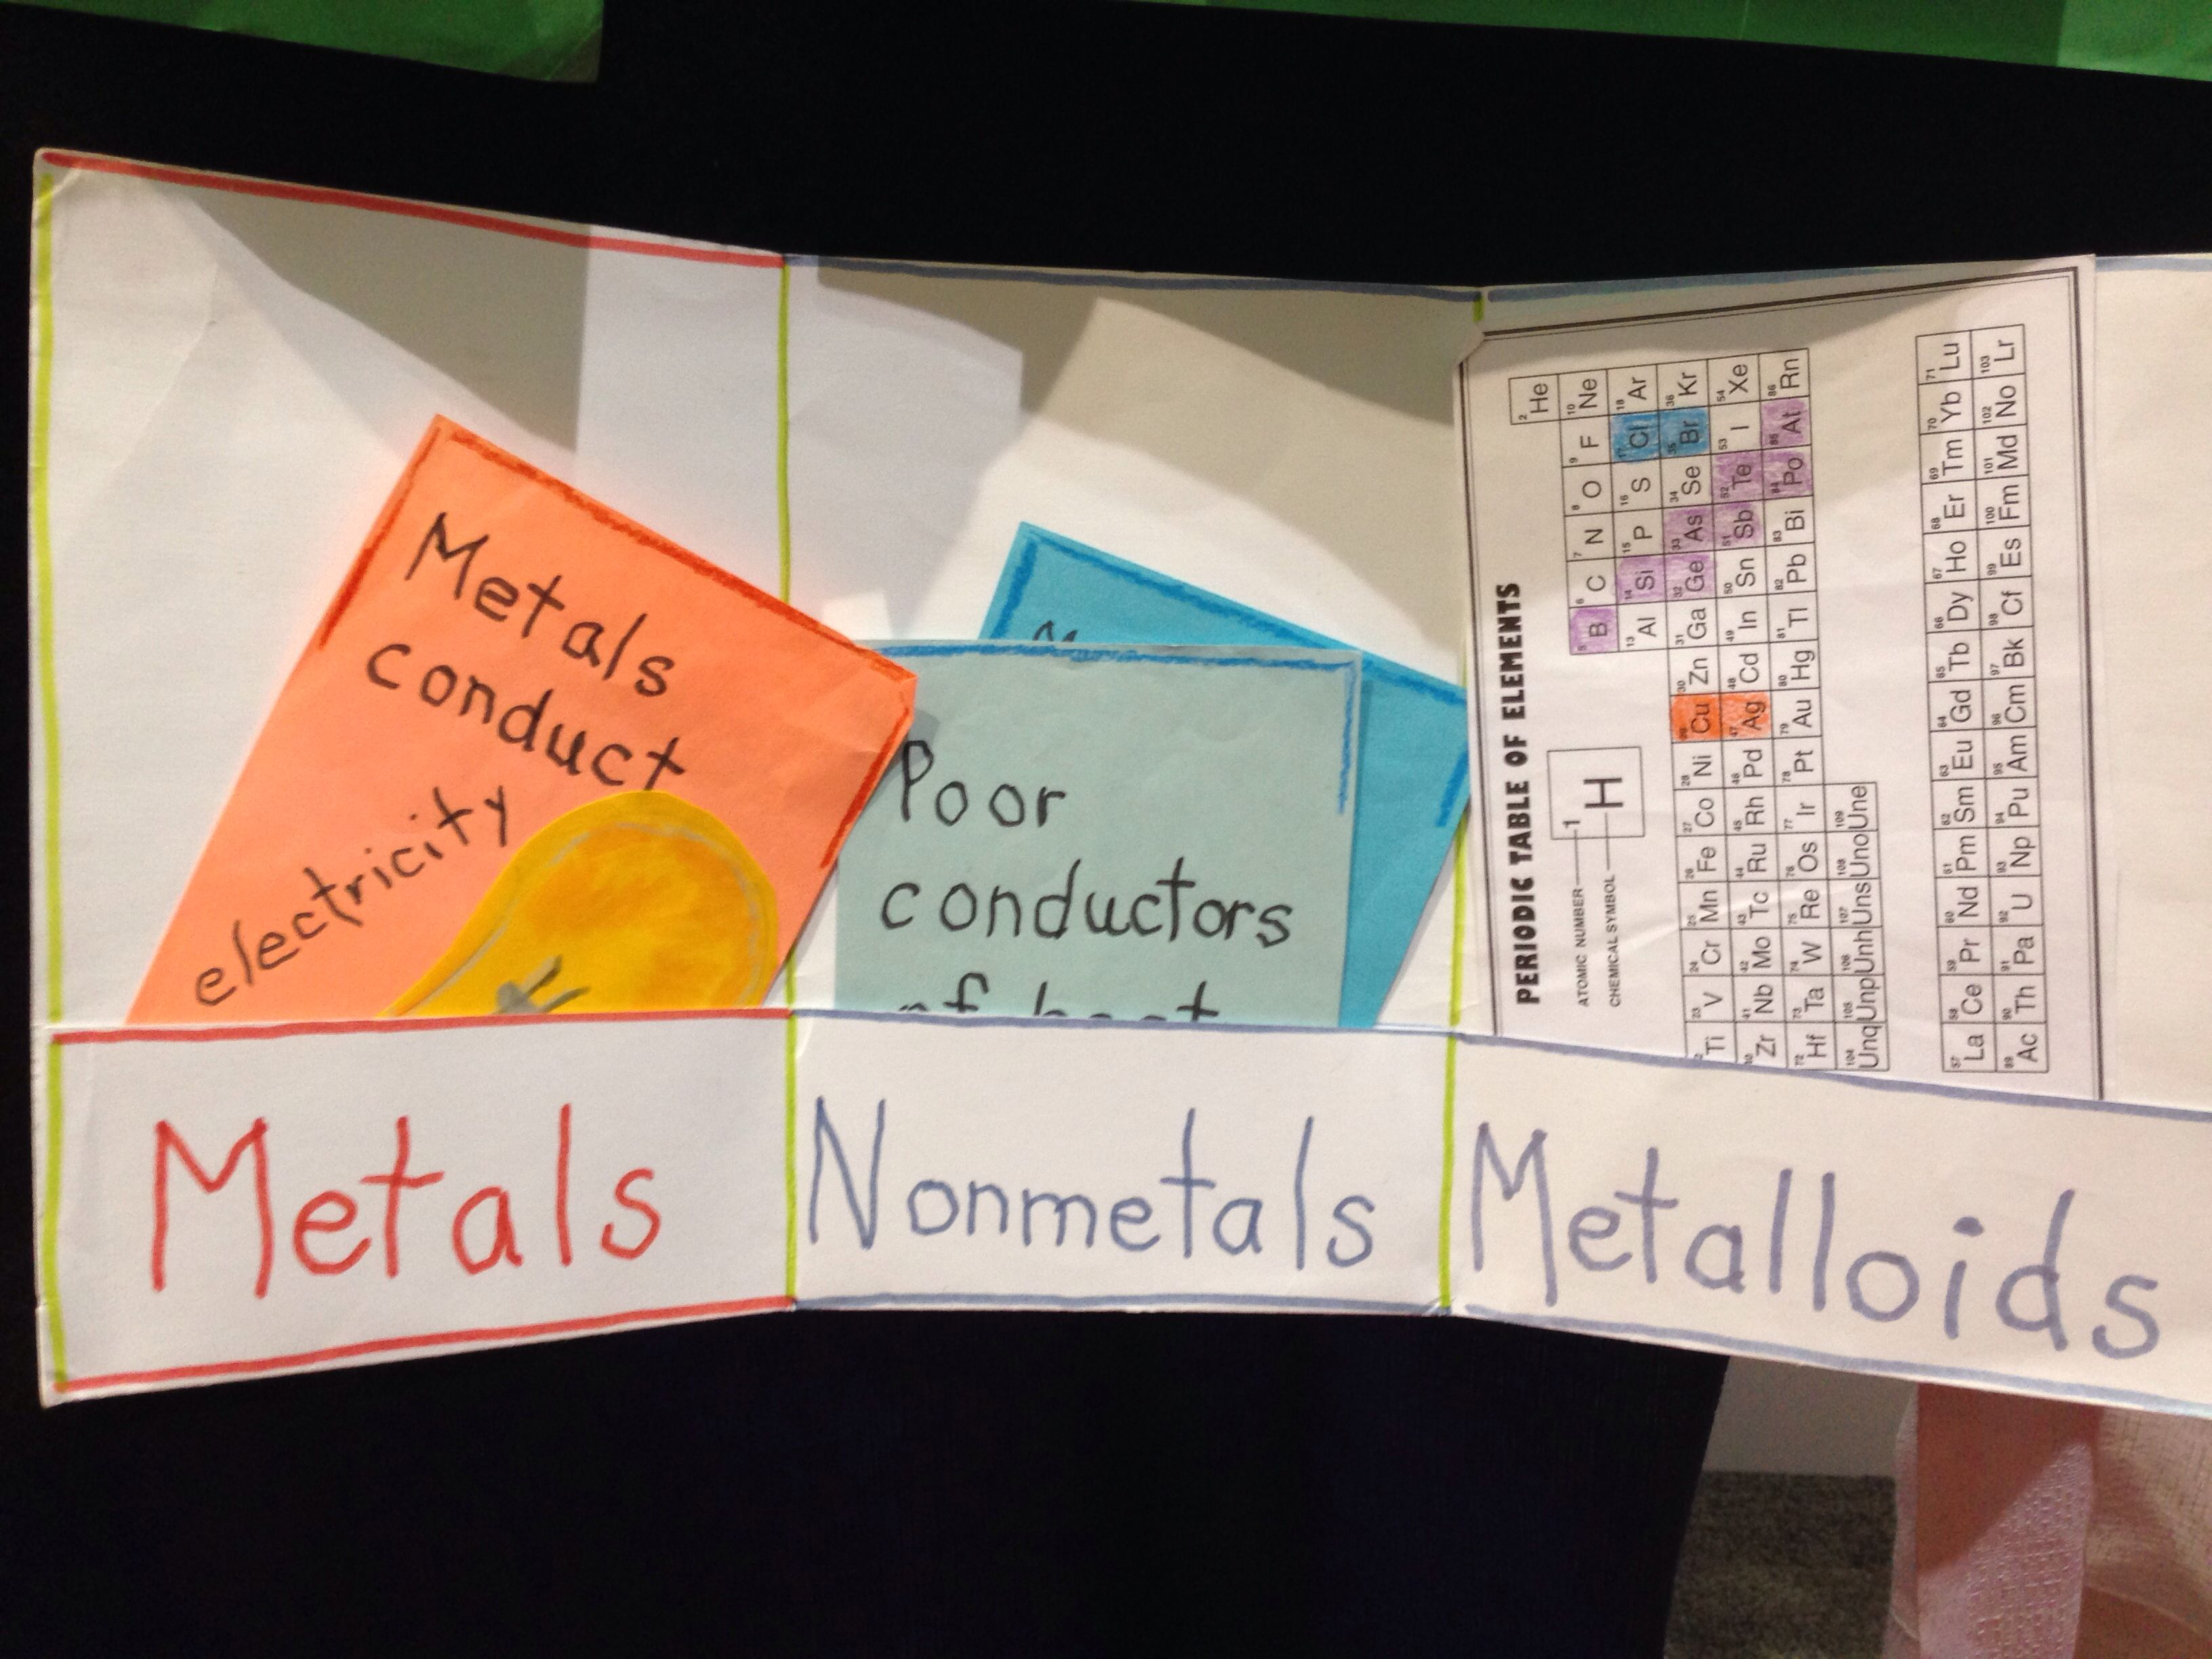 Metals Non Metals And Metalloids Card Sort Foldable